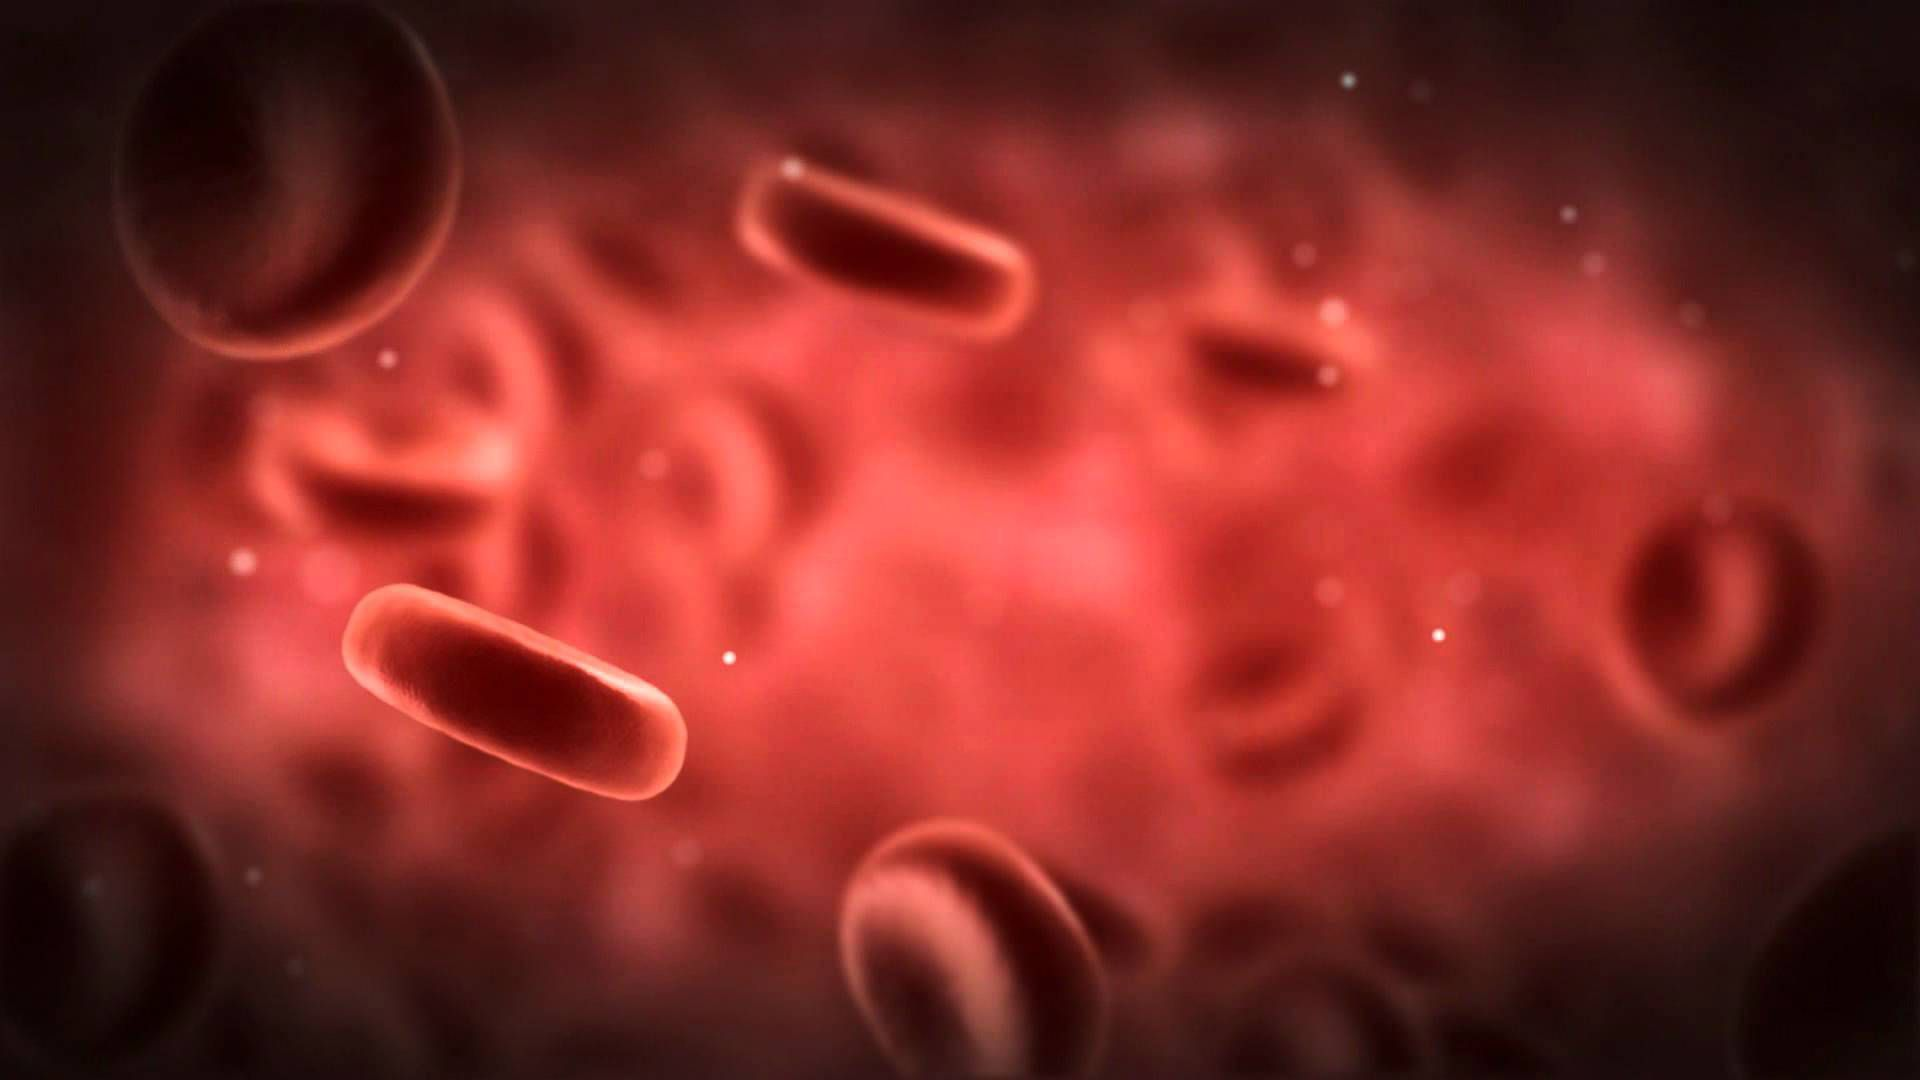 Blood Cells High Quality Wallpapers